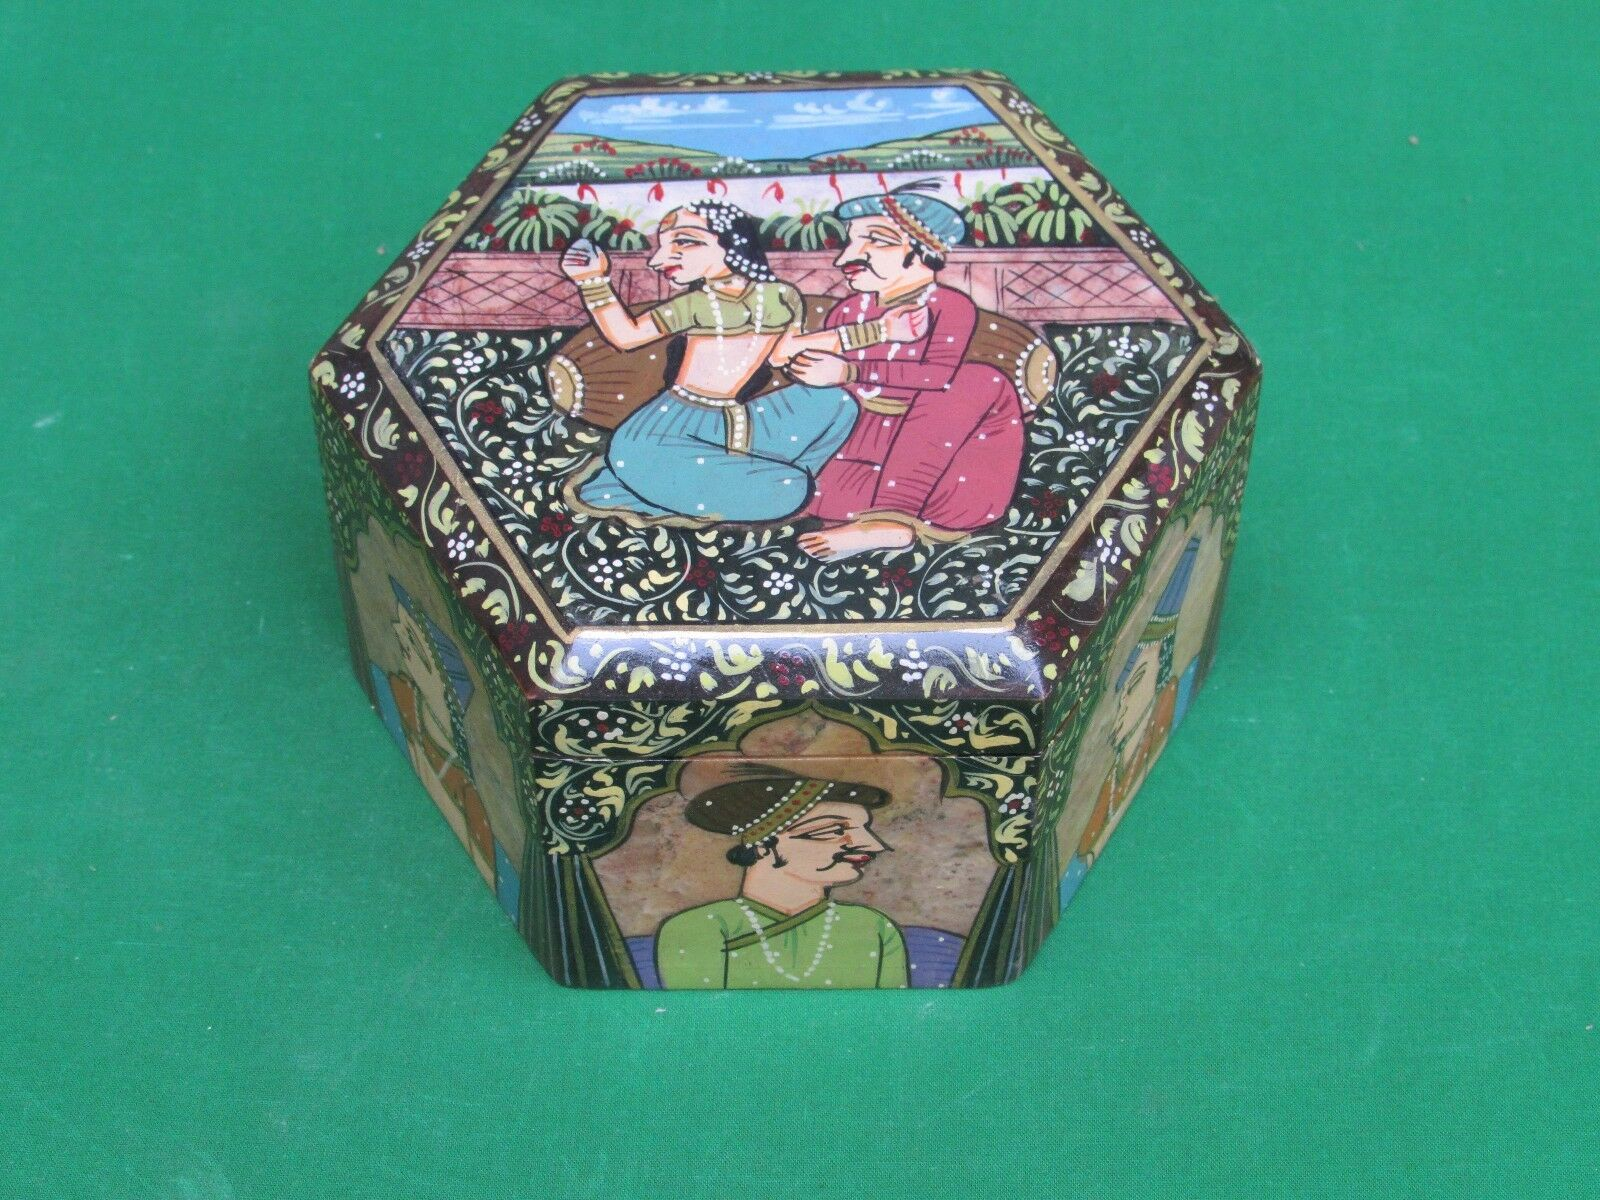 Marble Jewelry Box Trinket shah jahan mumtaz Handpainted Gifts and Home Decor